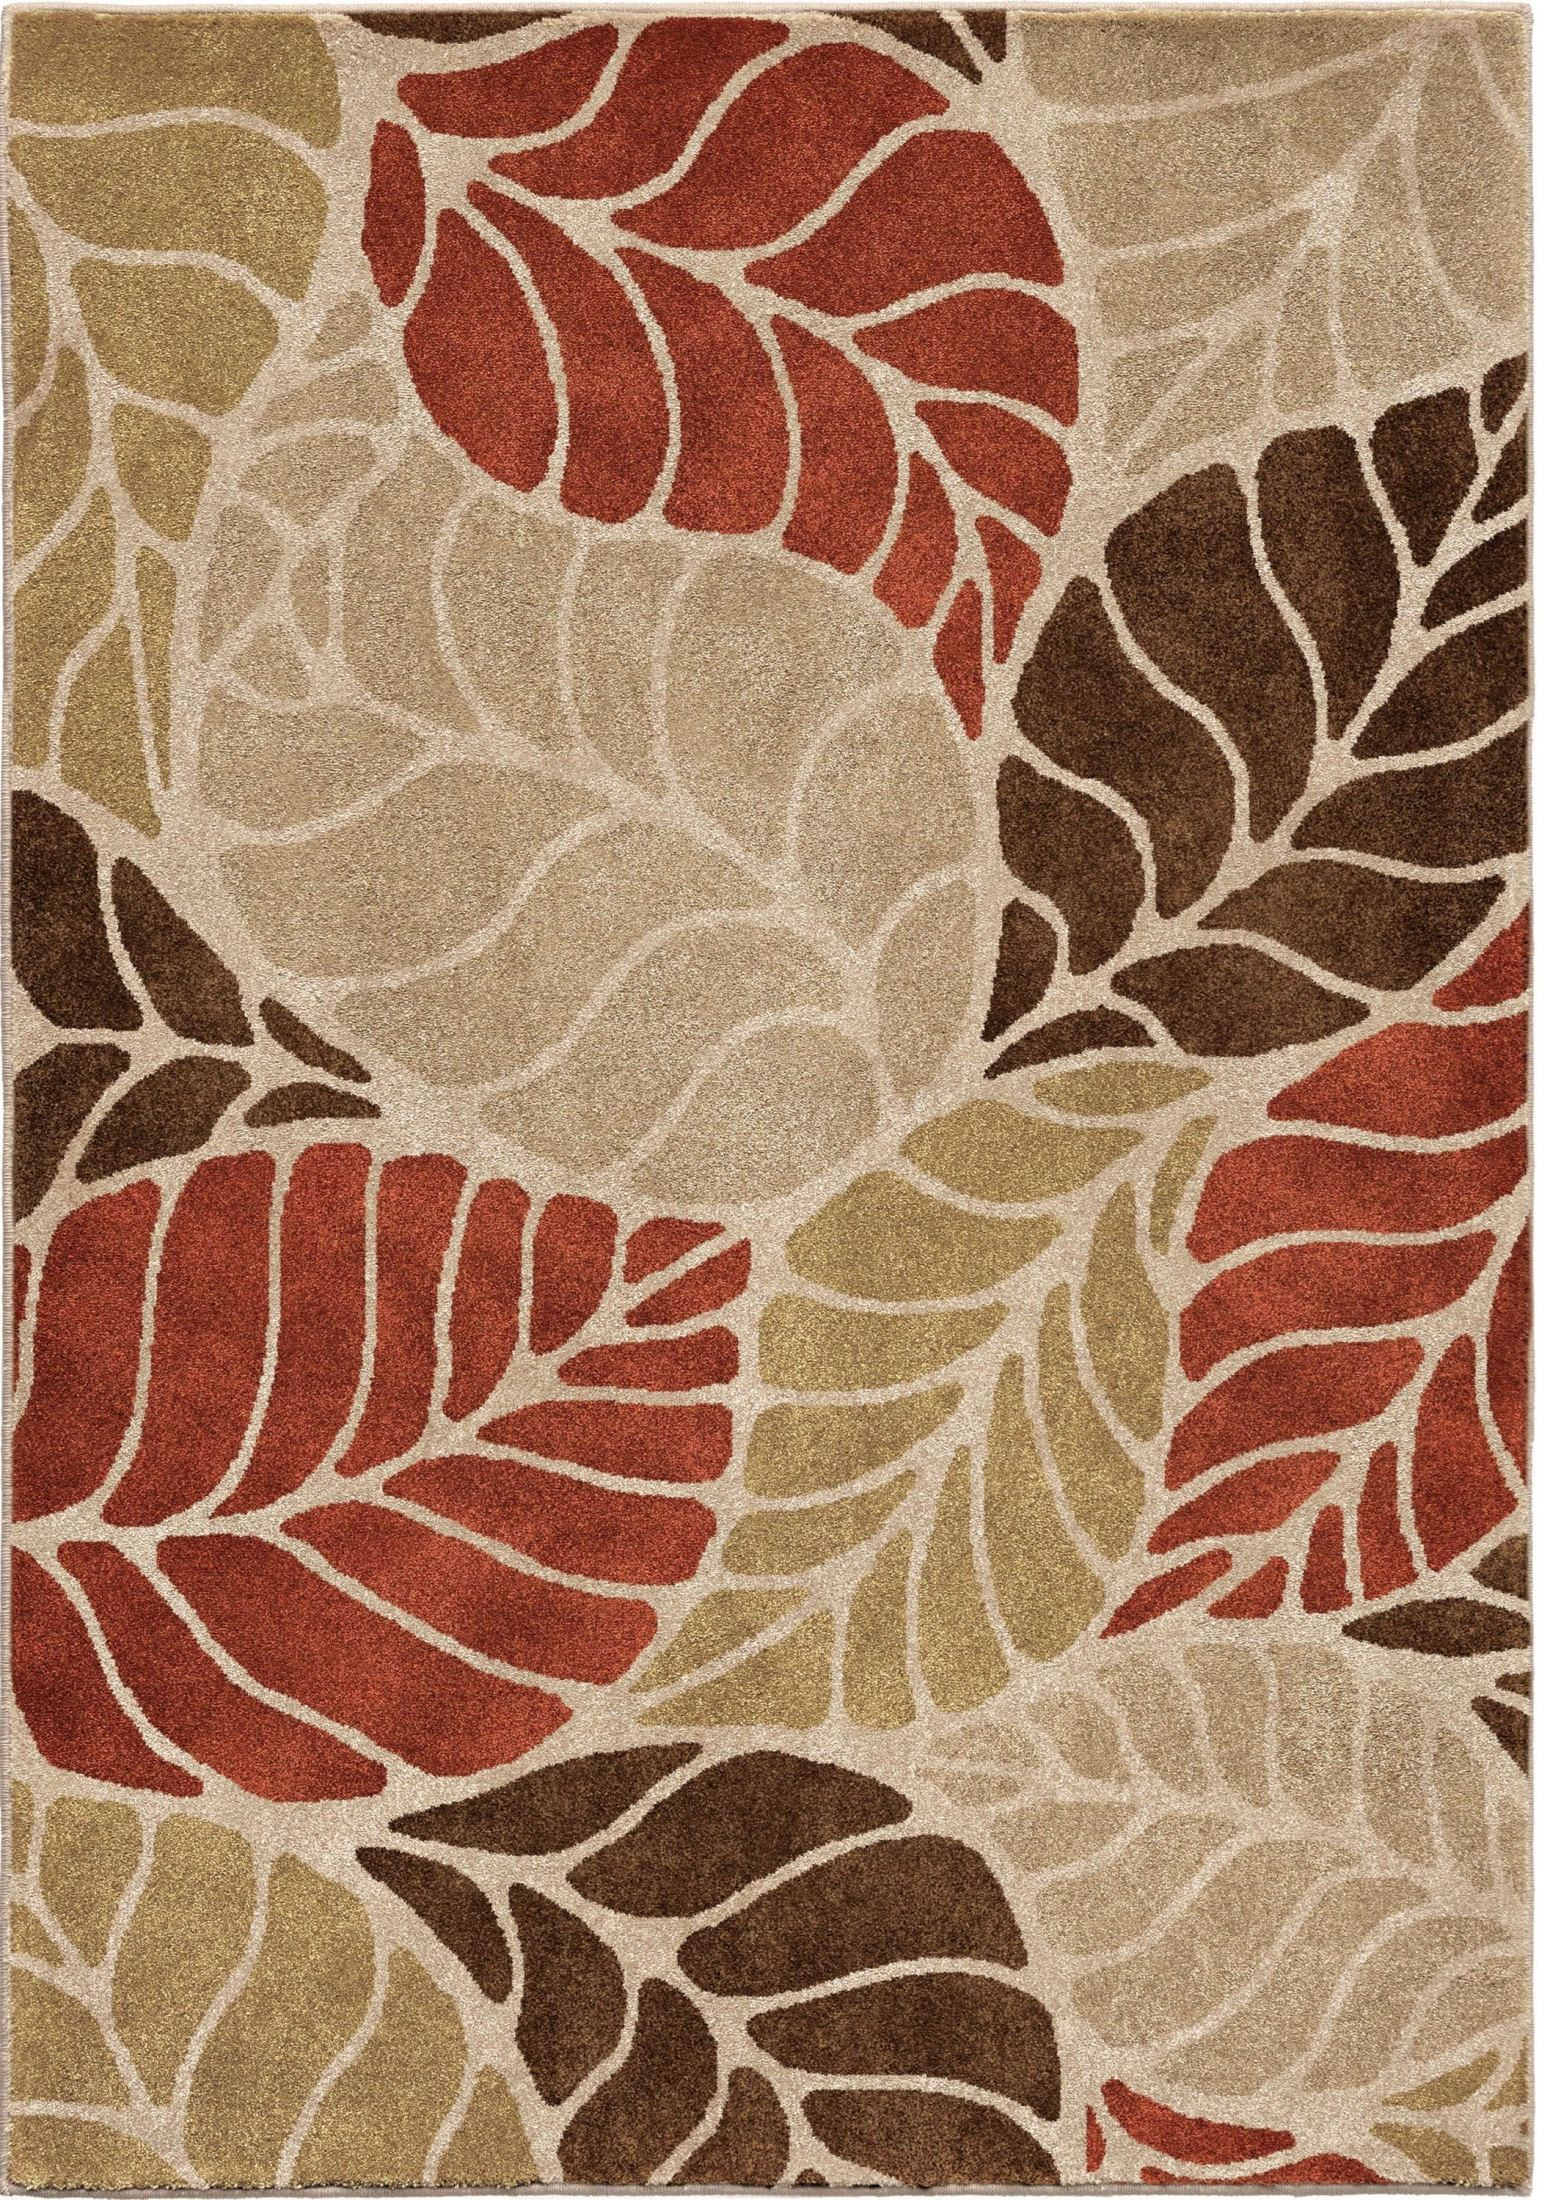 orian rugs insanely soft leaves palm overlay beige area large rug 3215 8x11 orian rugs. Black Bedroom Furniture Sets. Home Design Ideas